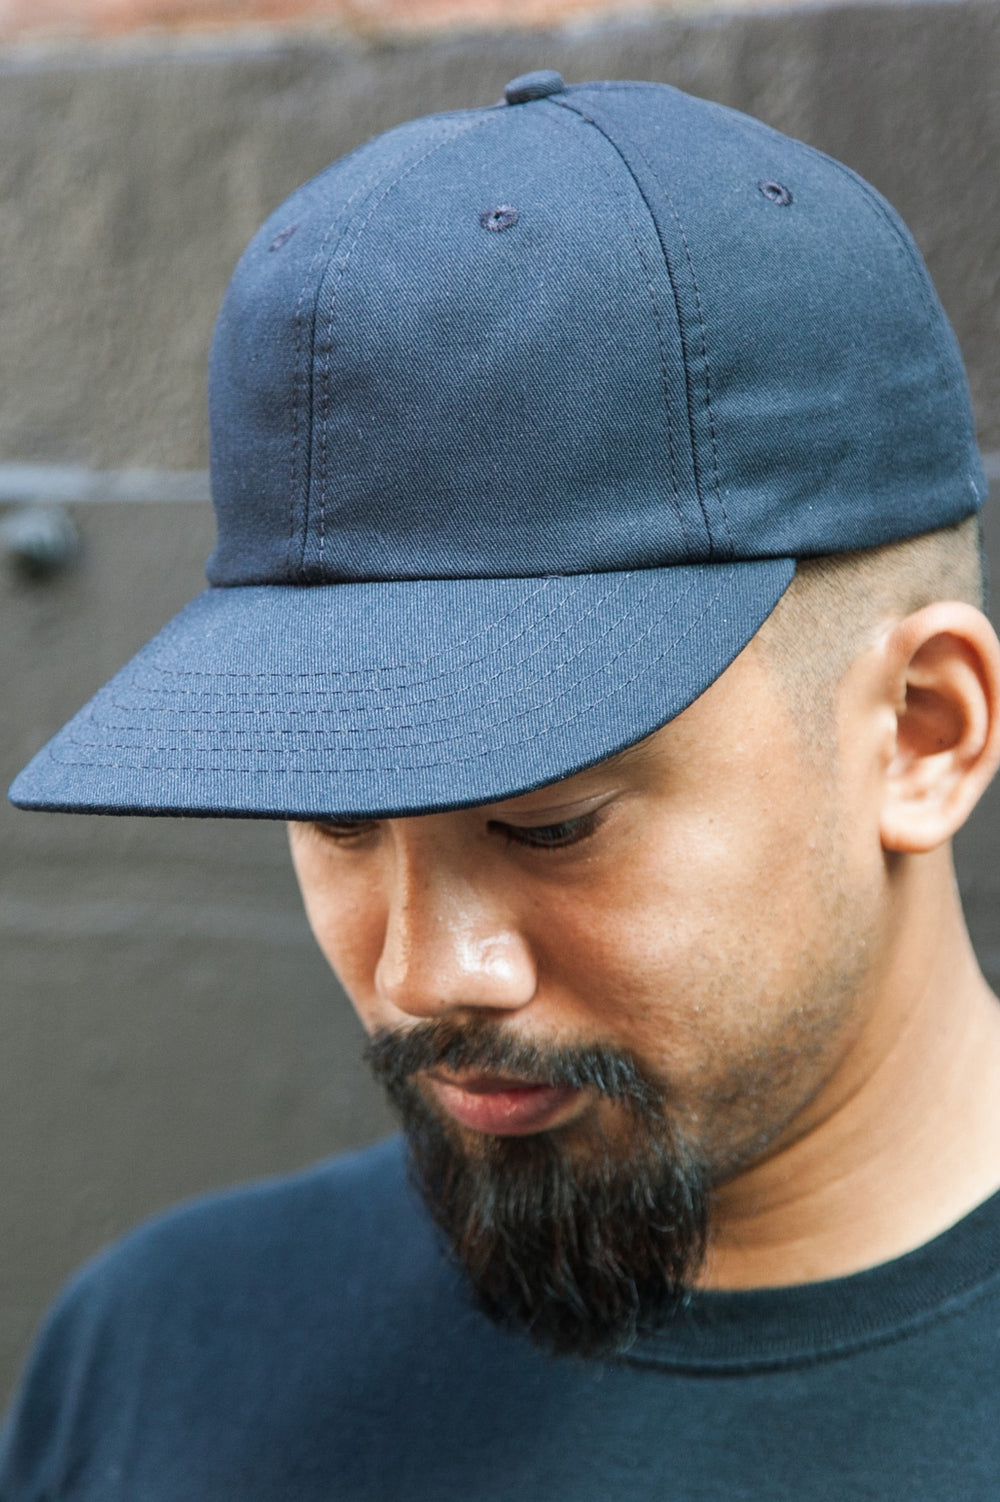 SIX PANEL CAP NAVY COTTON TWILL